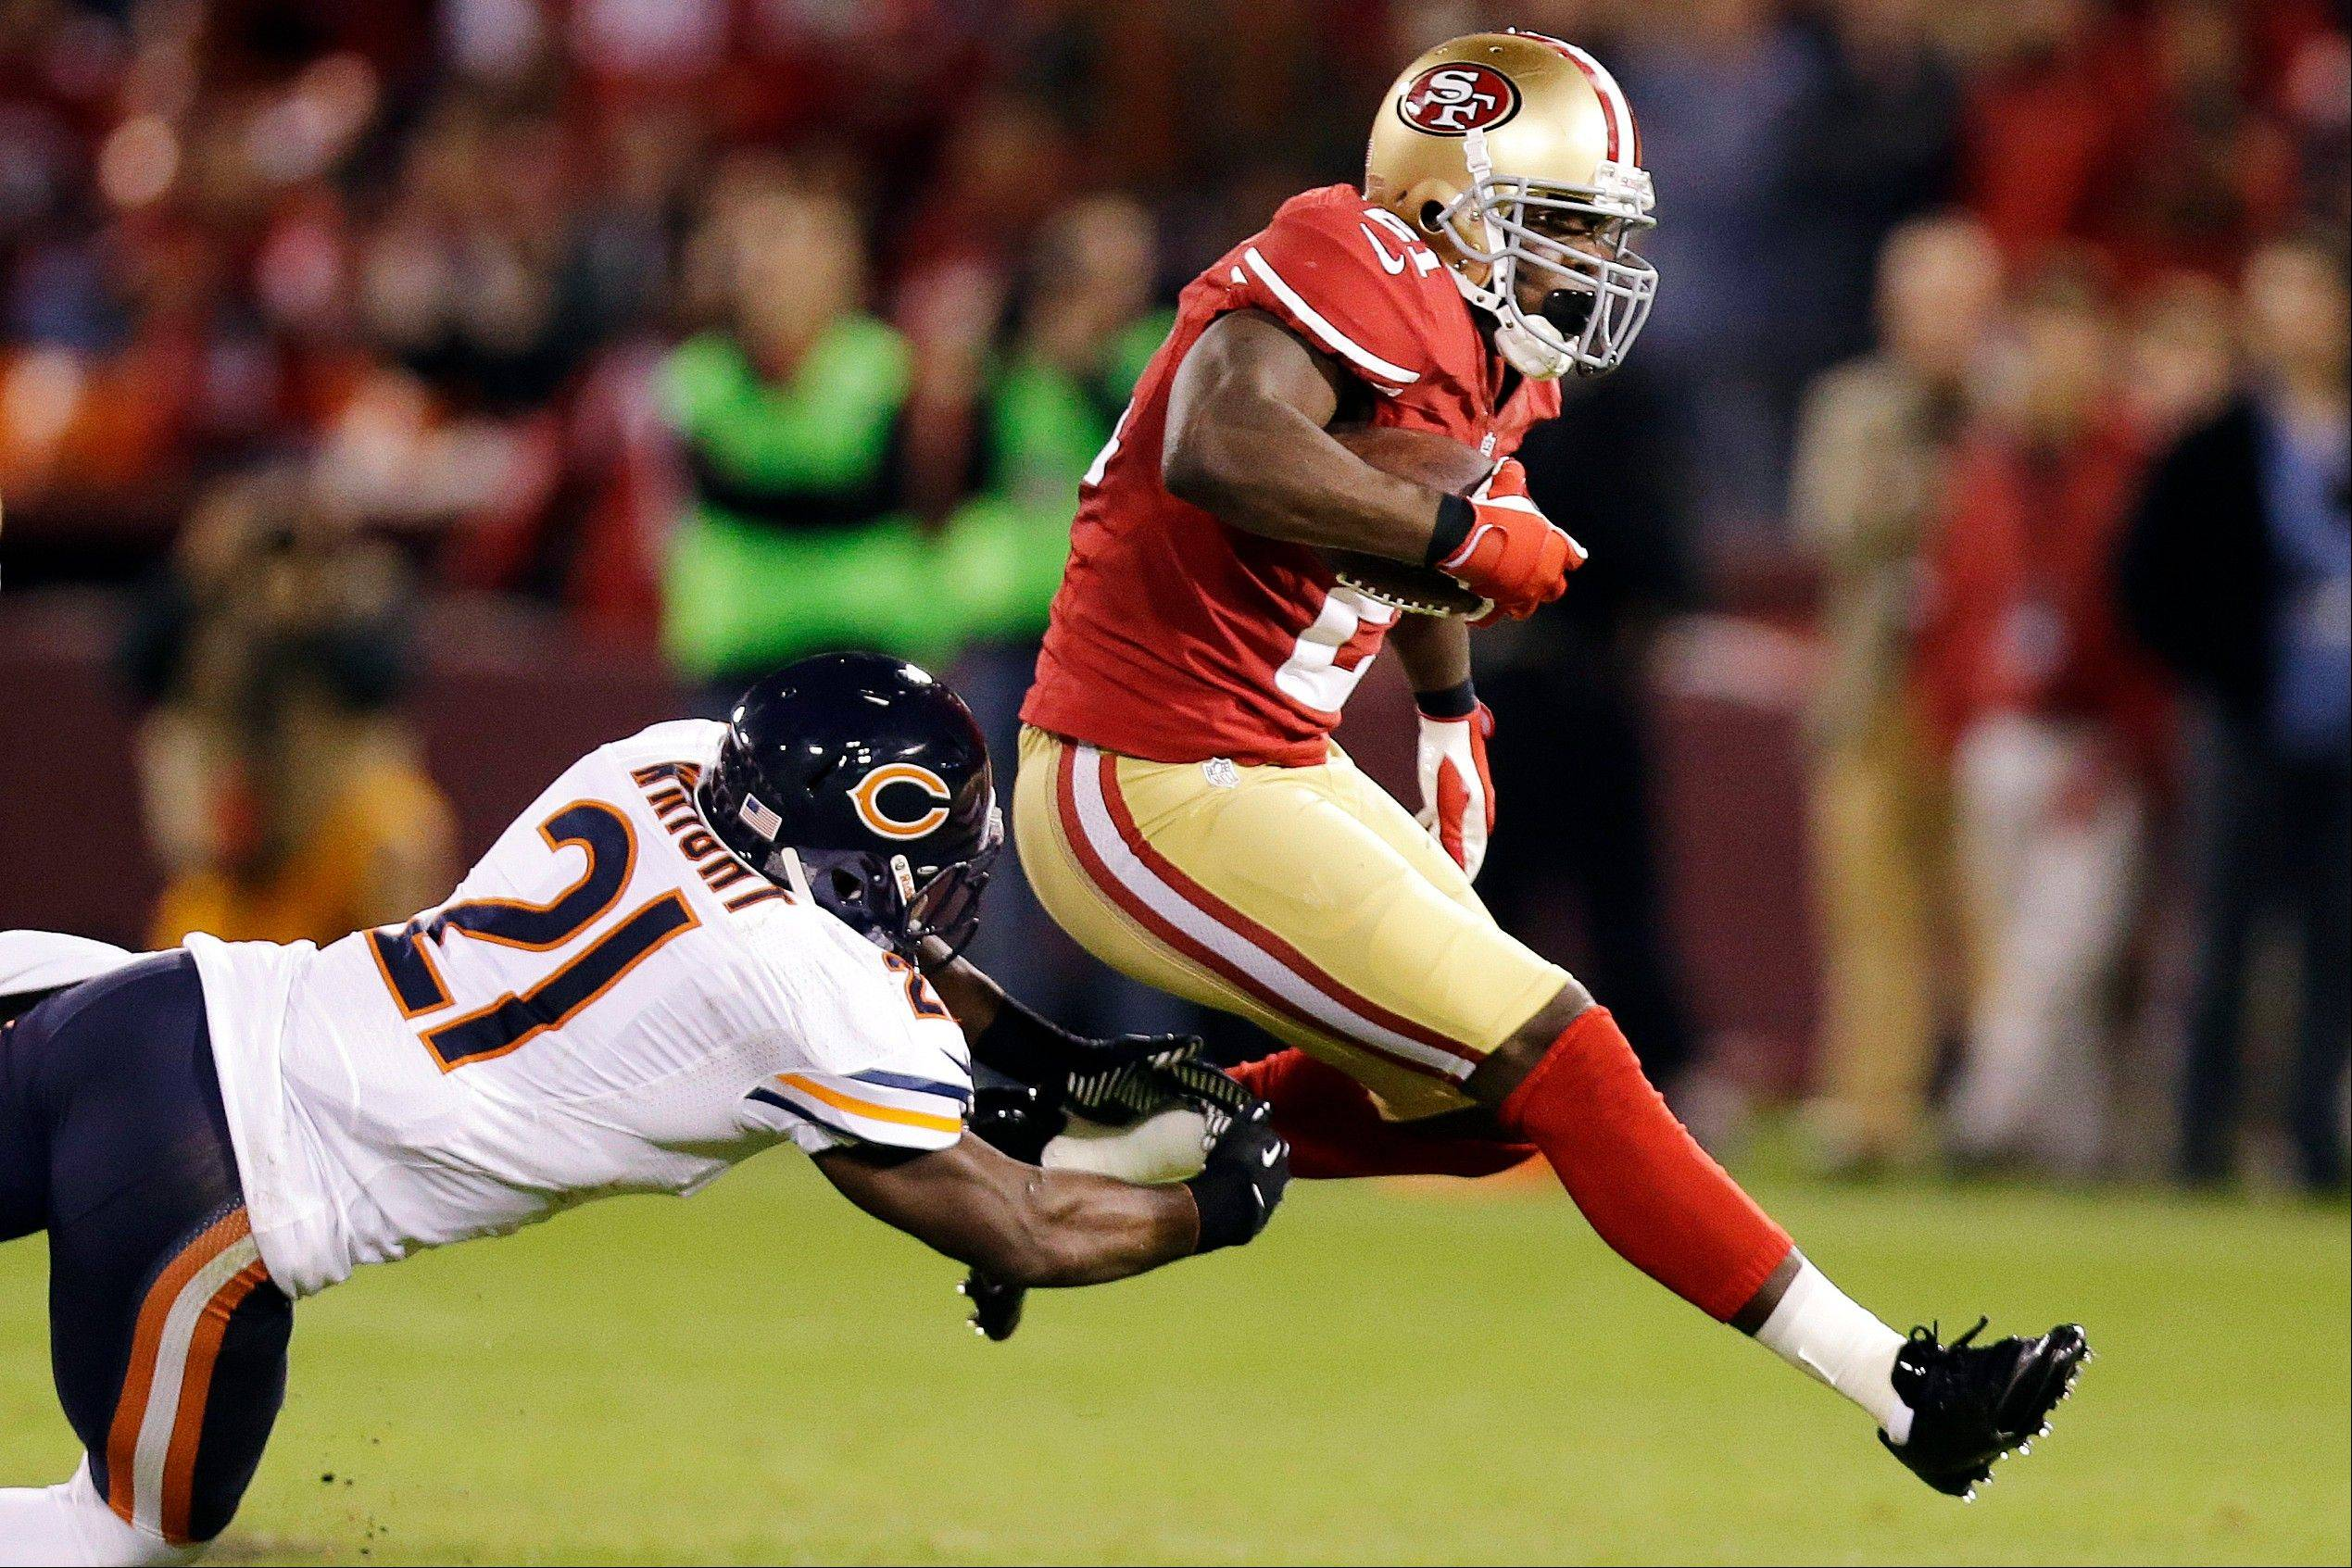 San Francisco 49ers running back Frank Gore jumps past Chicago Bears strong safety Major Wright during the second quarter.